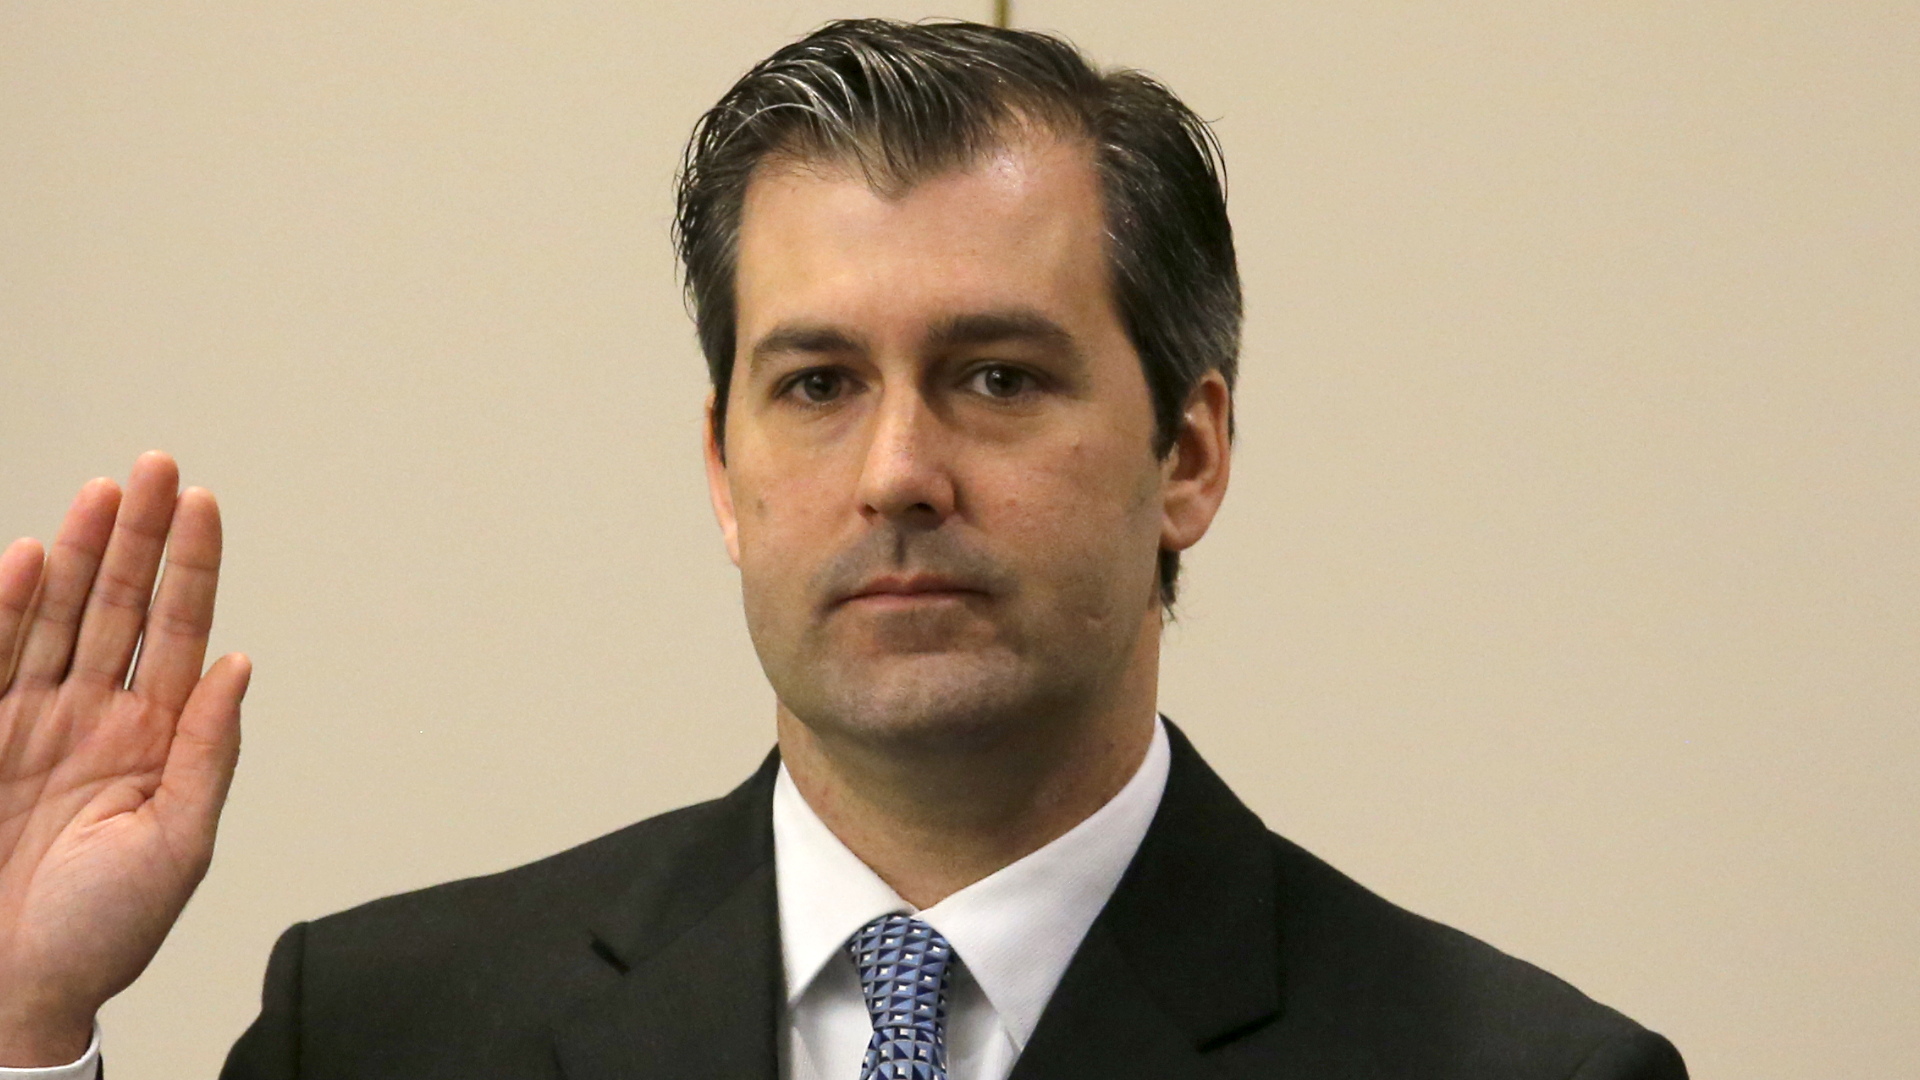 Michael Slager in court. (WCIV, File)<p></p>